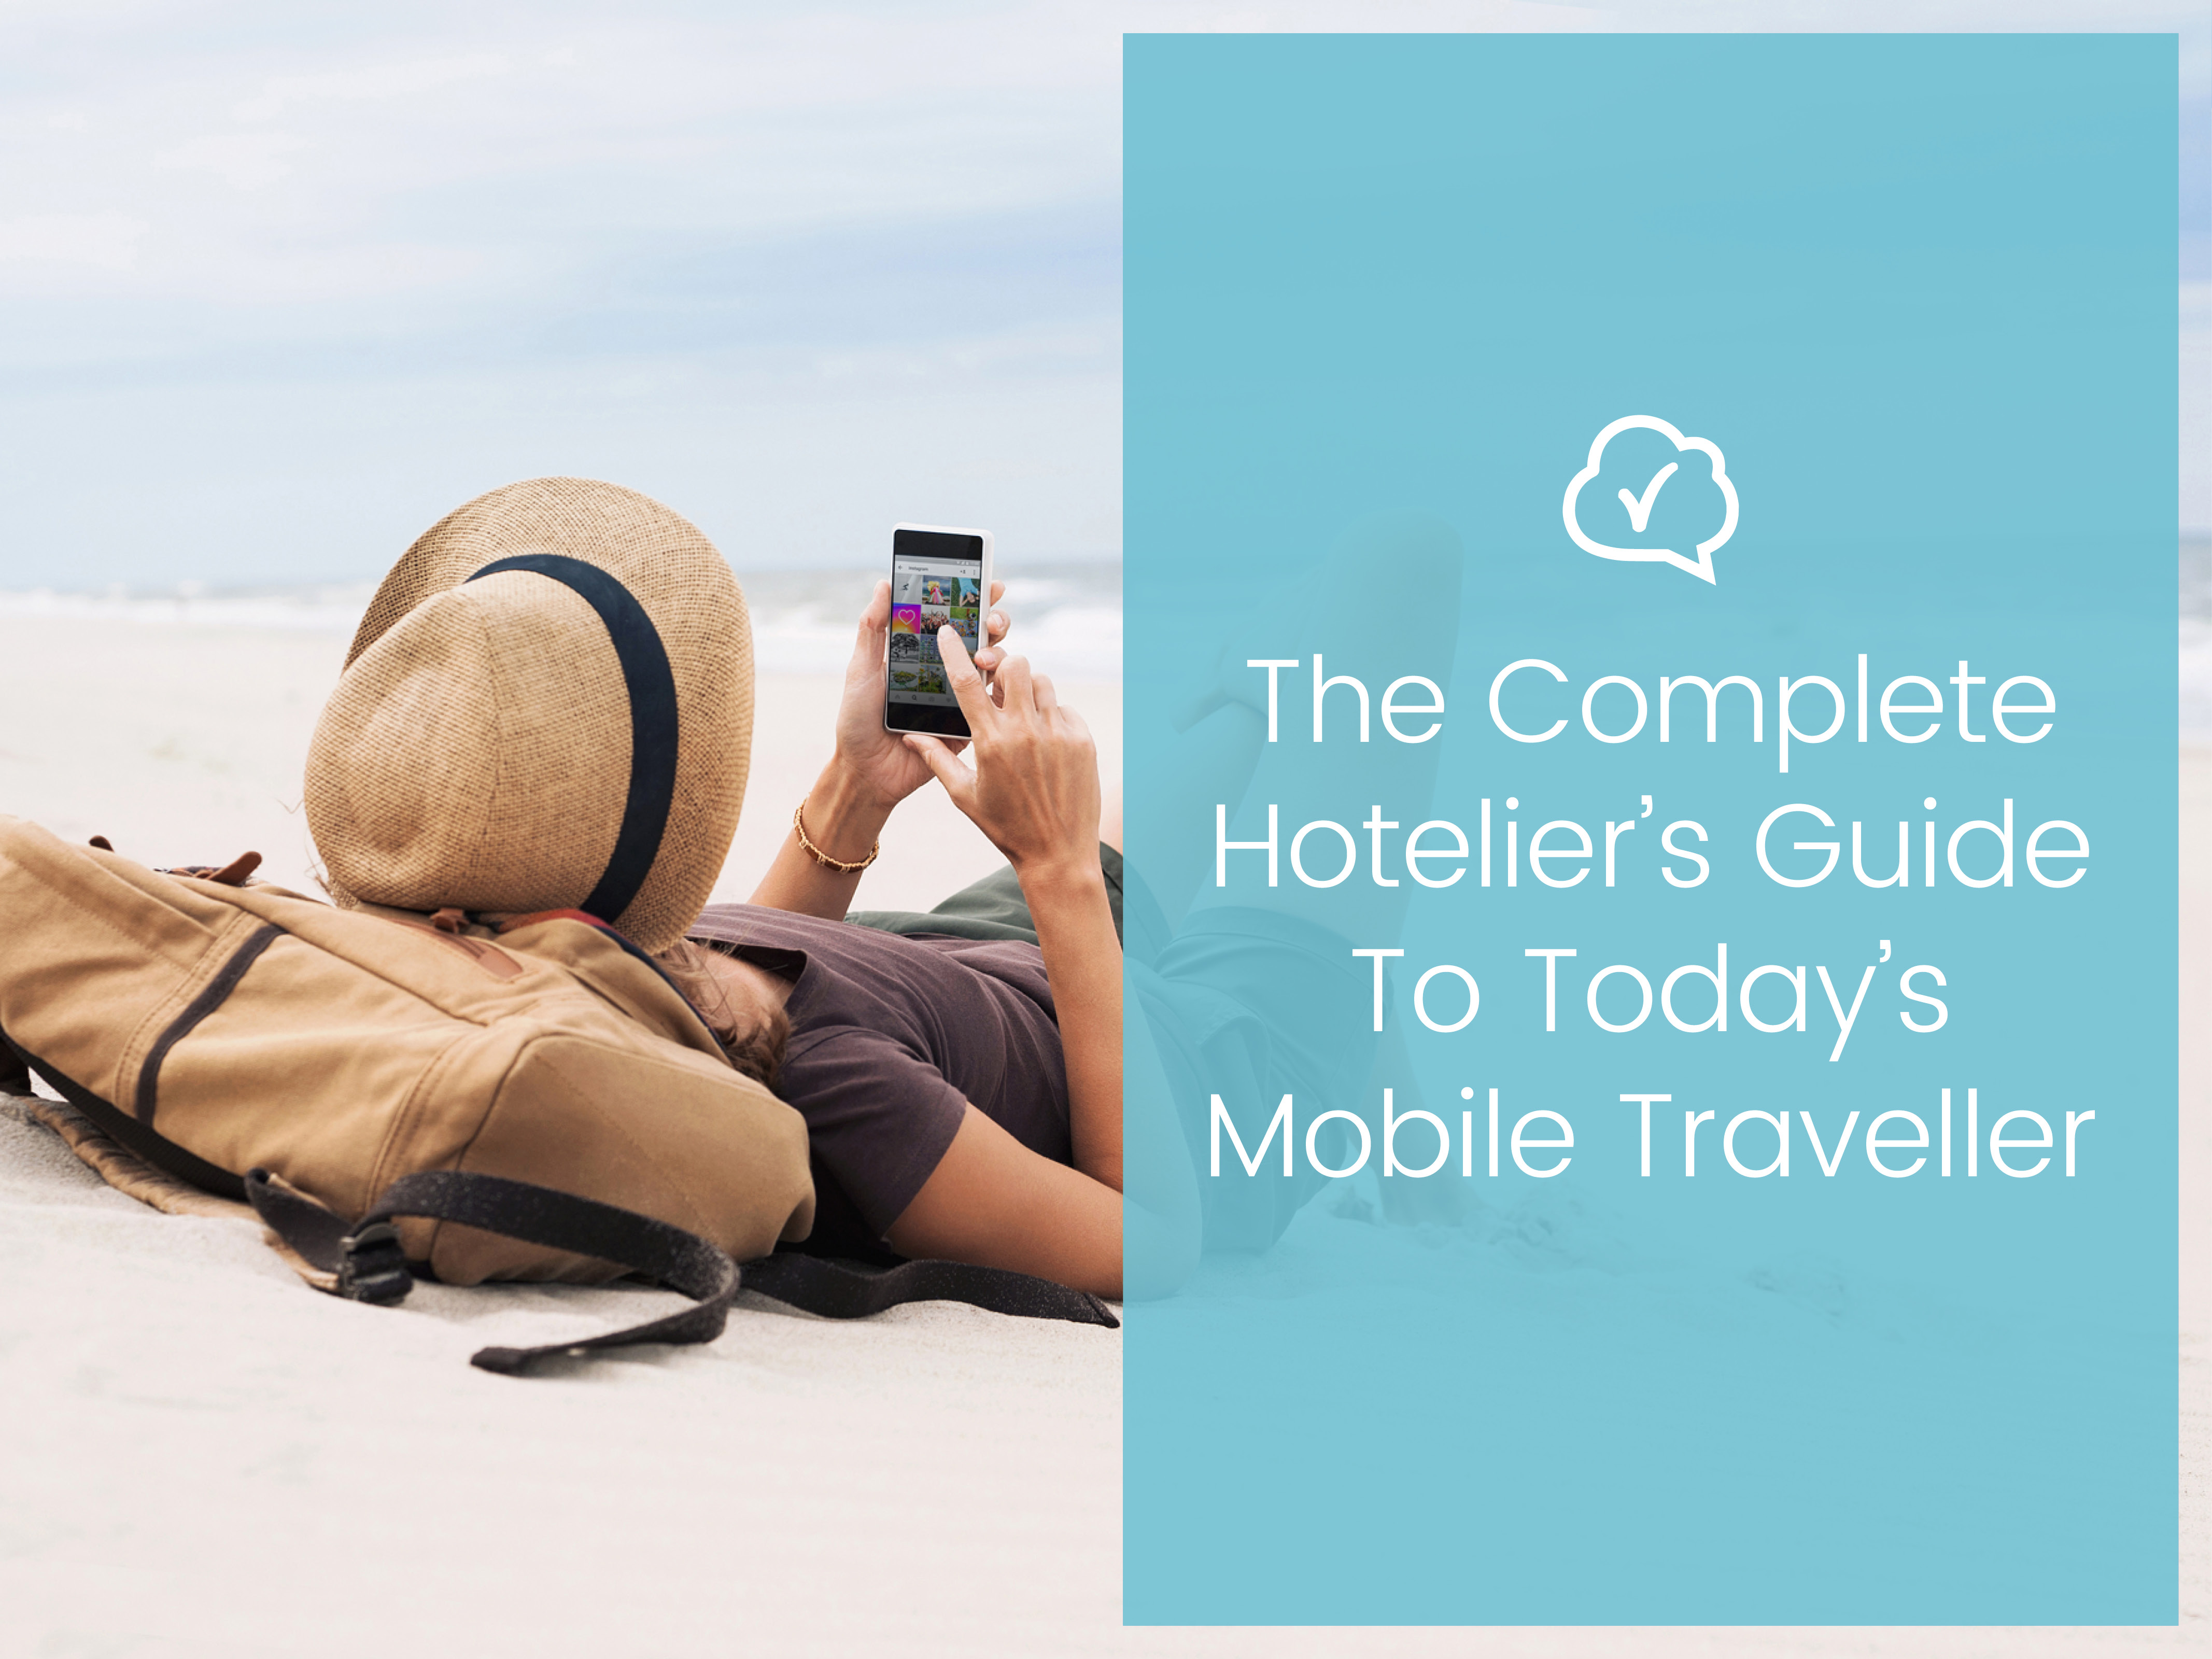 The Complete Hotelier's Guide to Today's Mobile Traveller